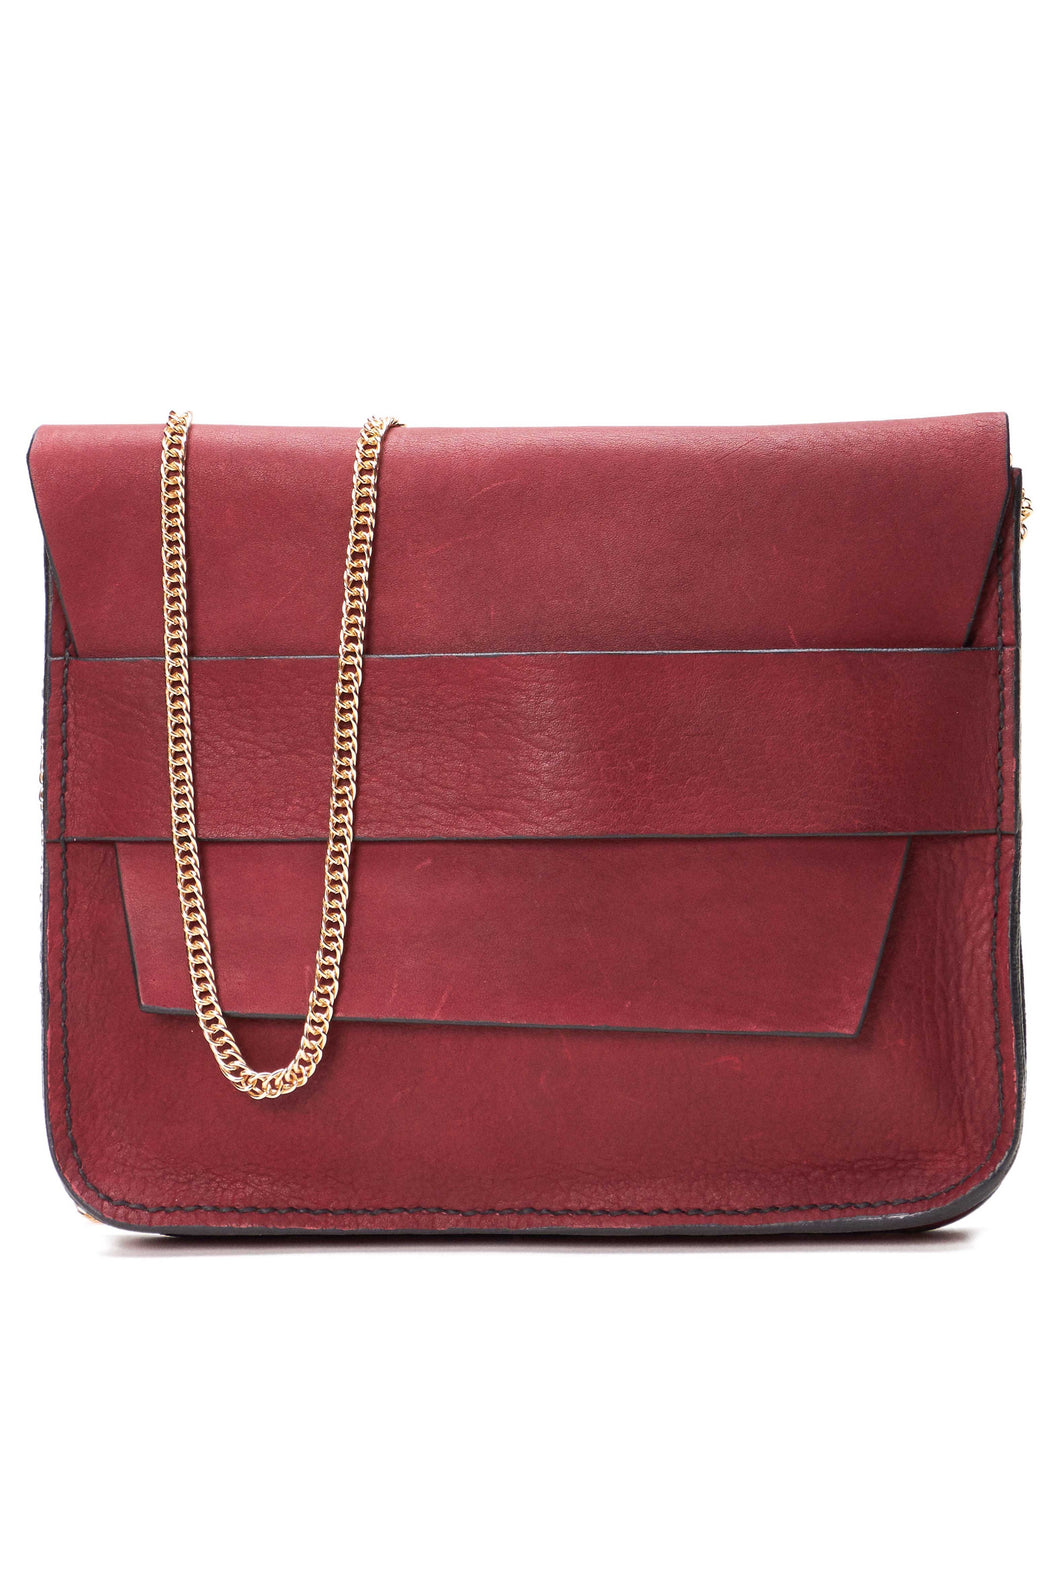 Banded Bordeaux Clutch